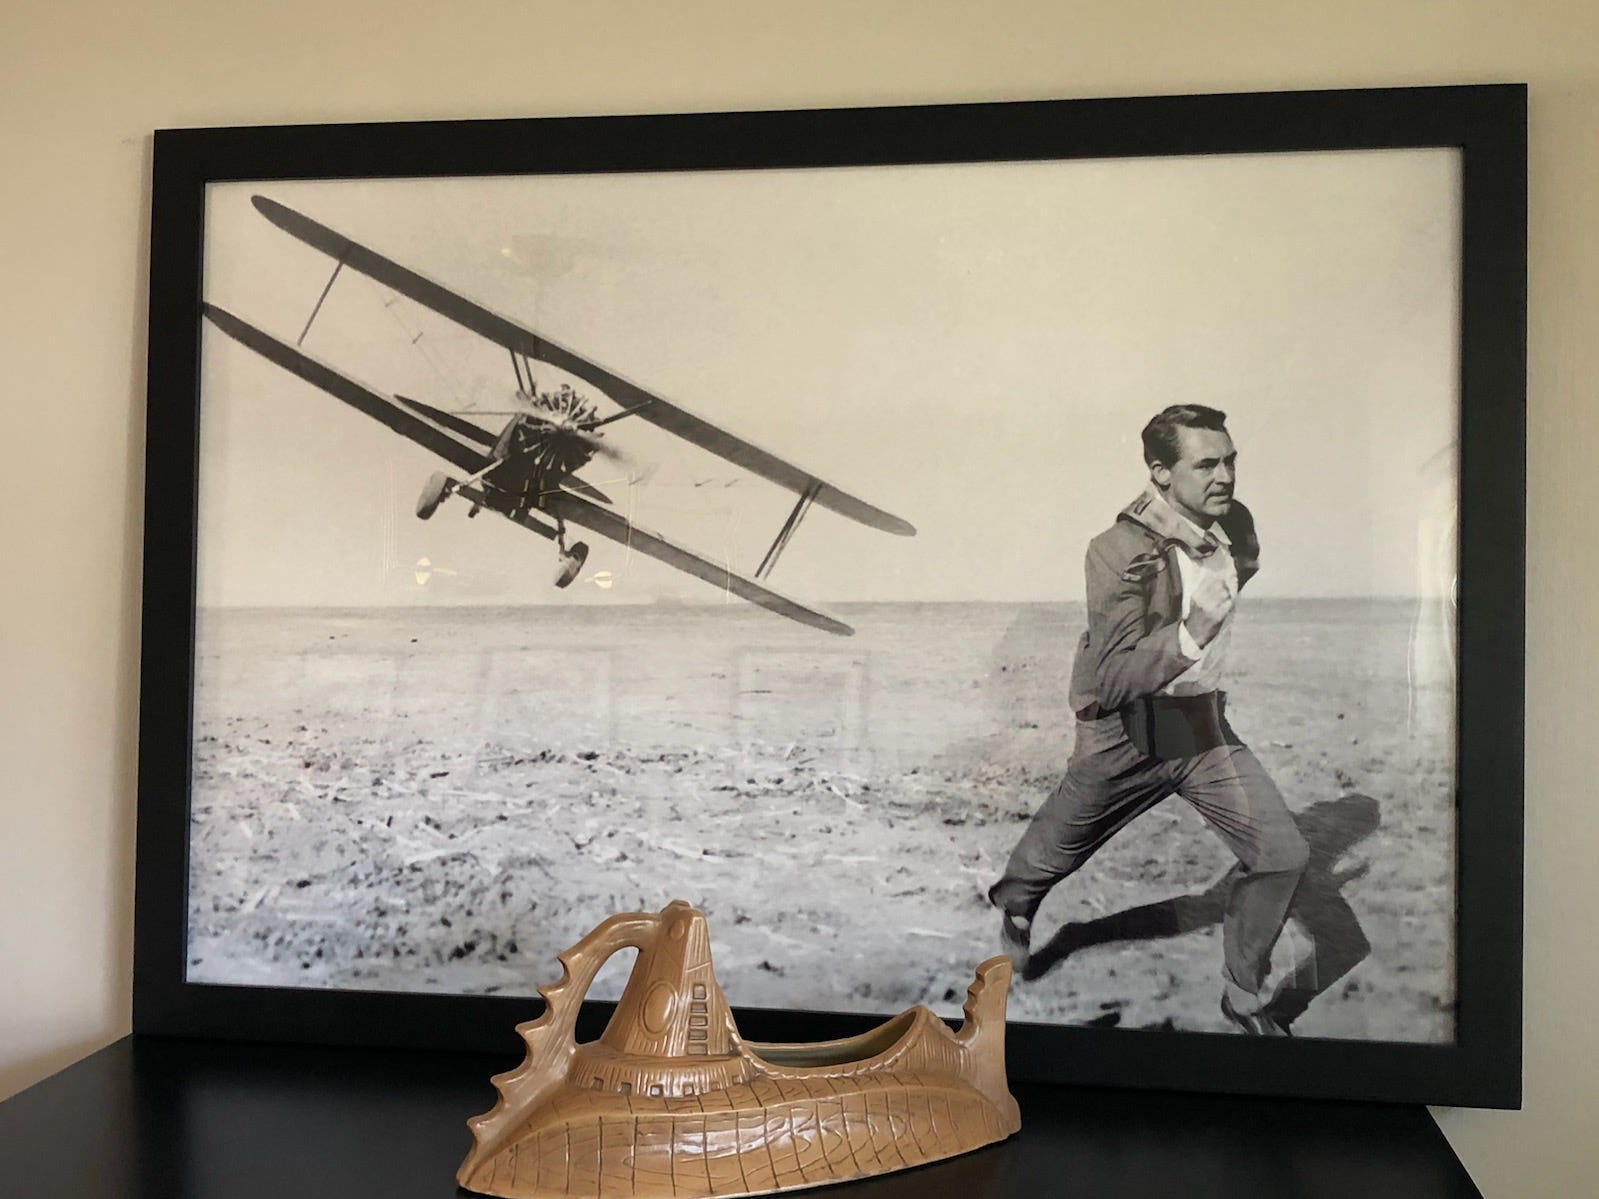 Art from an iconic scene in 'North by Northwest' starring Cary Grant adds a classic touch to Alex and Jonathan Chapman's Cherry Hill dining room.